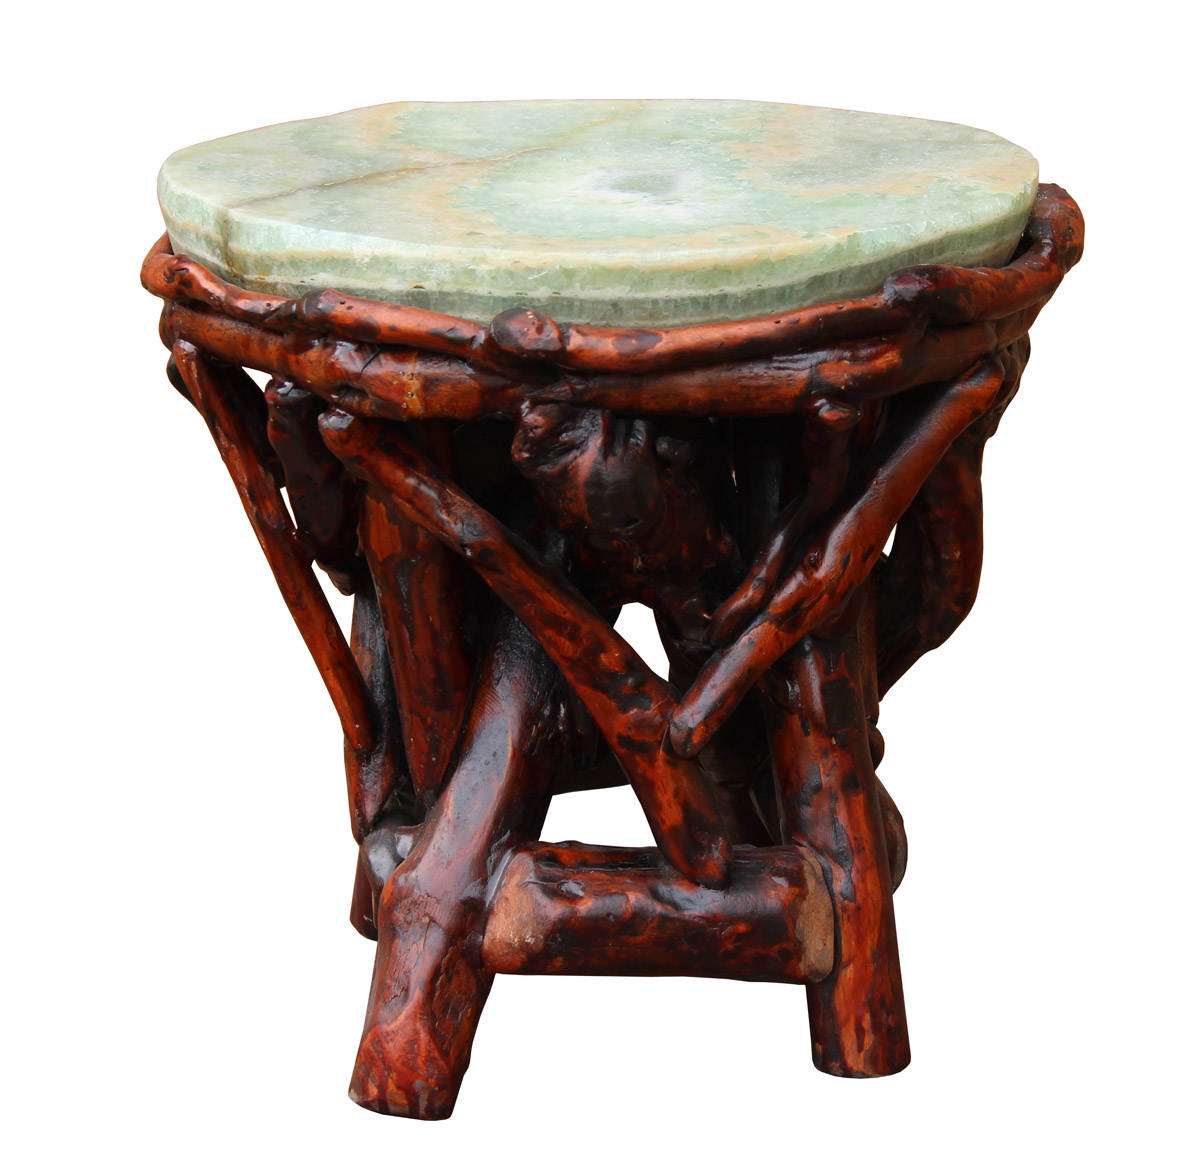 crystal jade stone top bamboo wood stick accent stool table etsy fullxfull jaca tibetan drum kitchen dining sets metal wine rack teak standard height sofa end pineapple umbrella